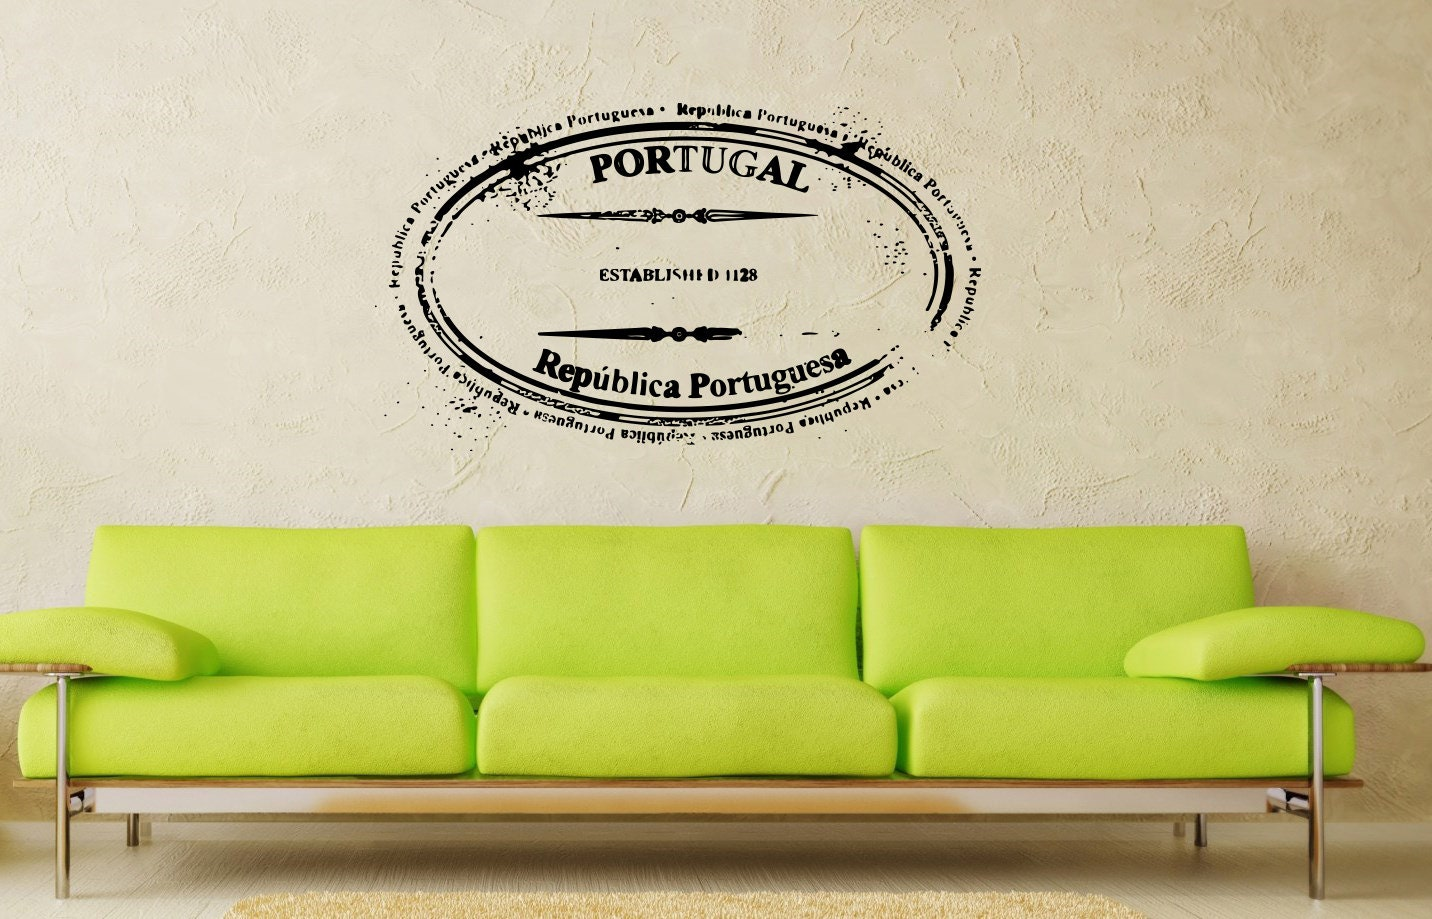 Housewares Wall Vinyl Decal Seal Stamp Portugal Art Design Murals Modern Interior Decor Stylish Sticker Removable Room Window SV2526 - SuperVinylDecal